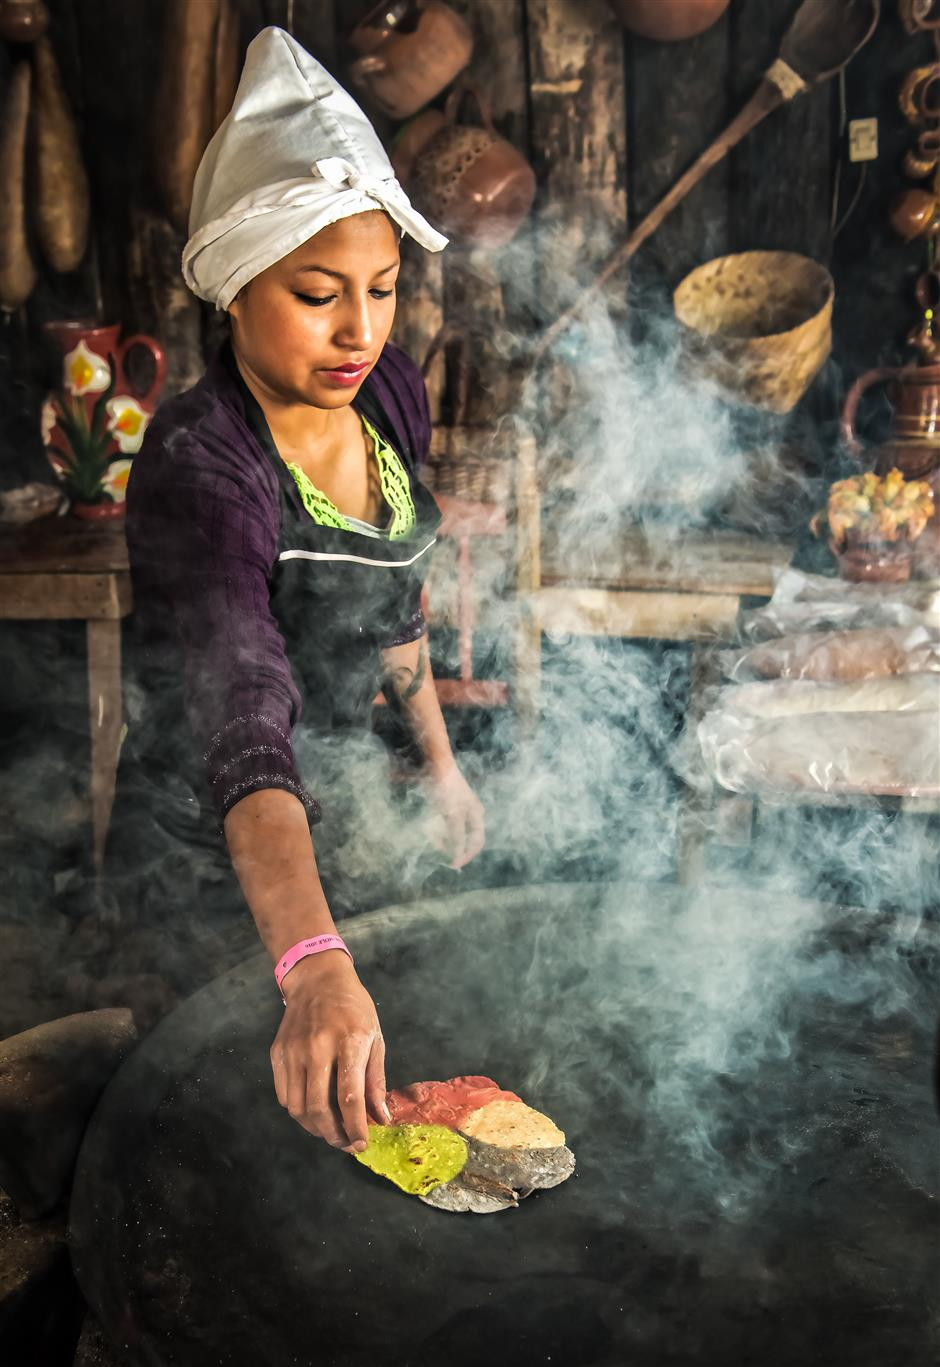 Mexican regional cuisine is driving booming food scene